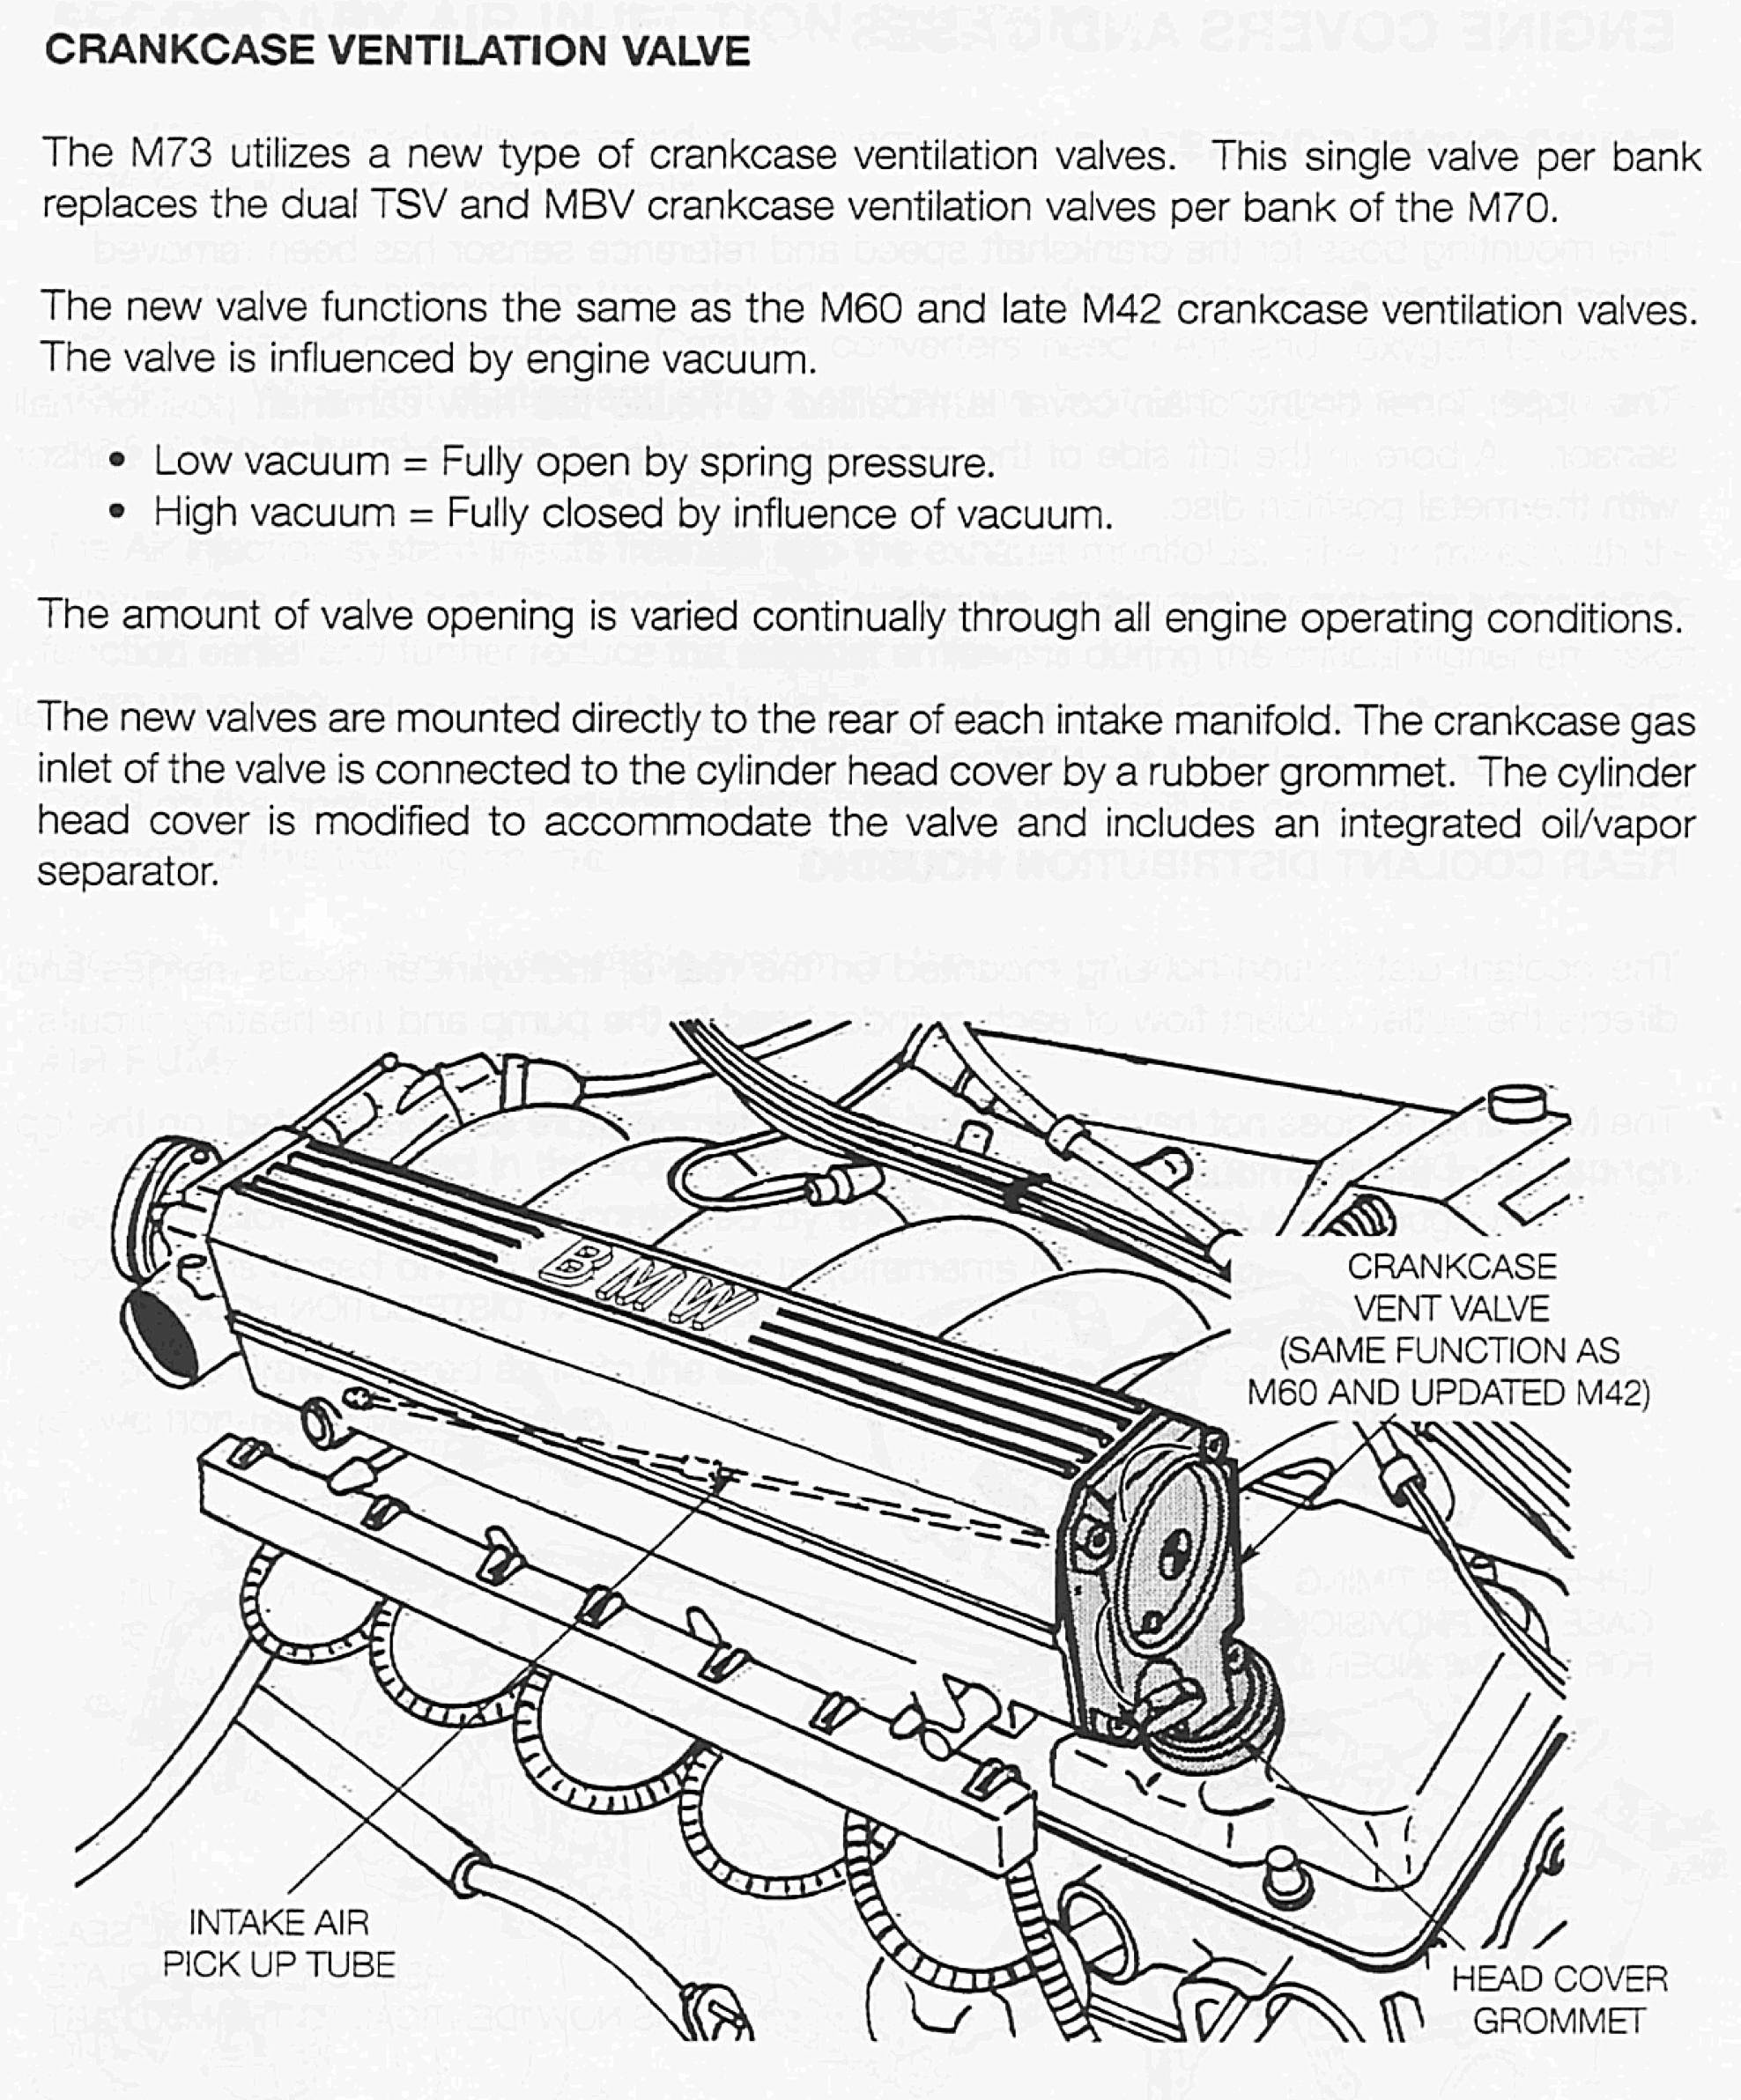 timms bmw m73 v12 engine details and specifications V2 Engine timm s bmw information the m73 v12 engine e31 and e38